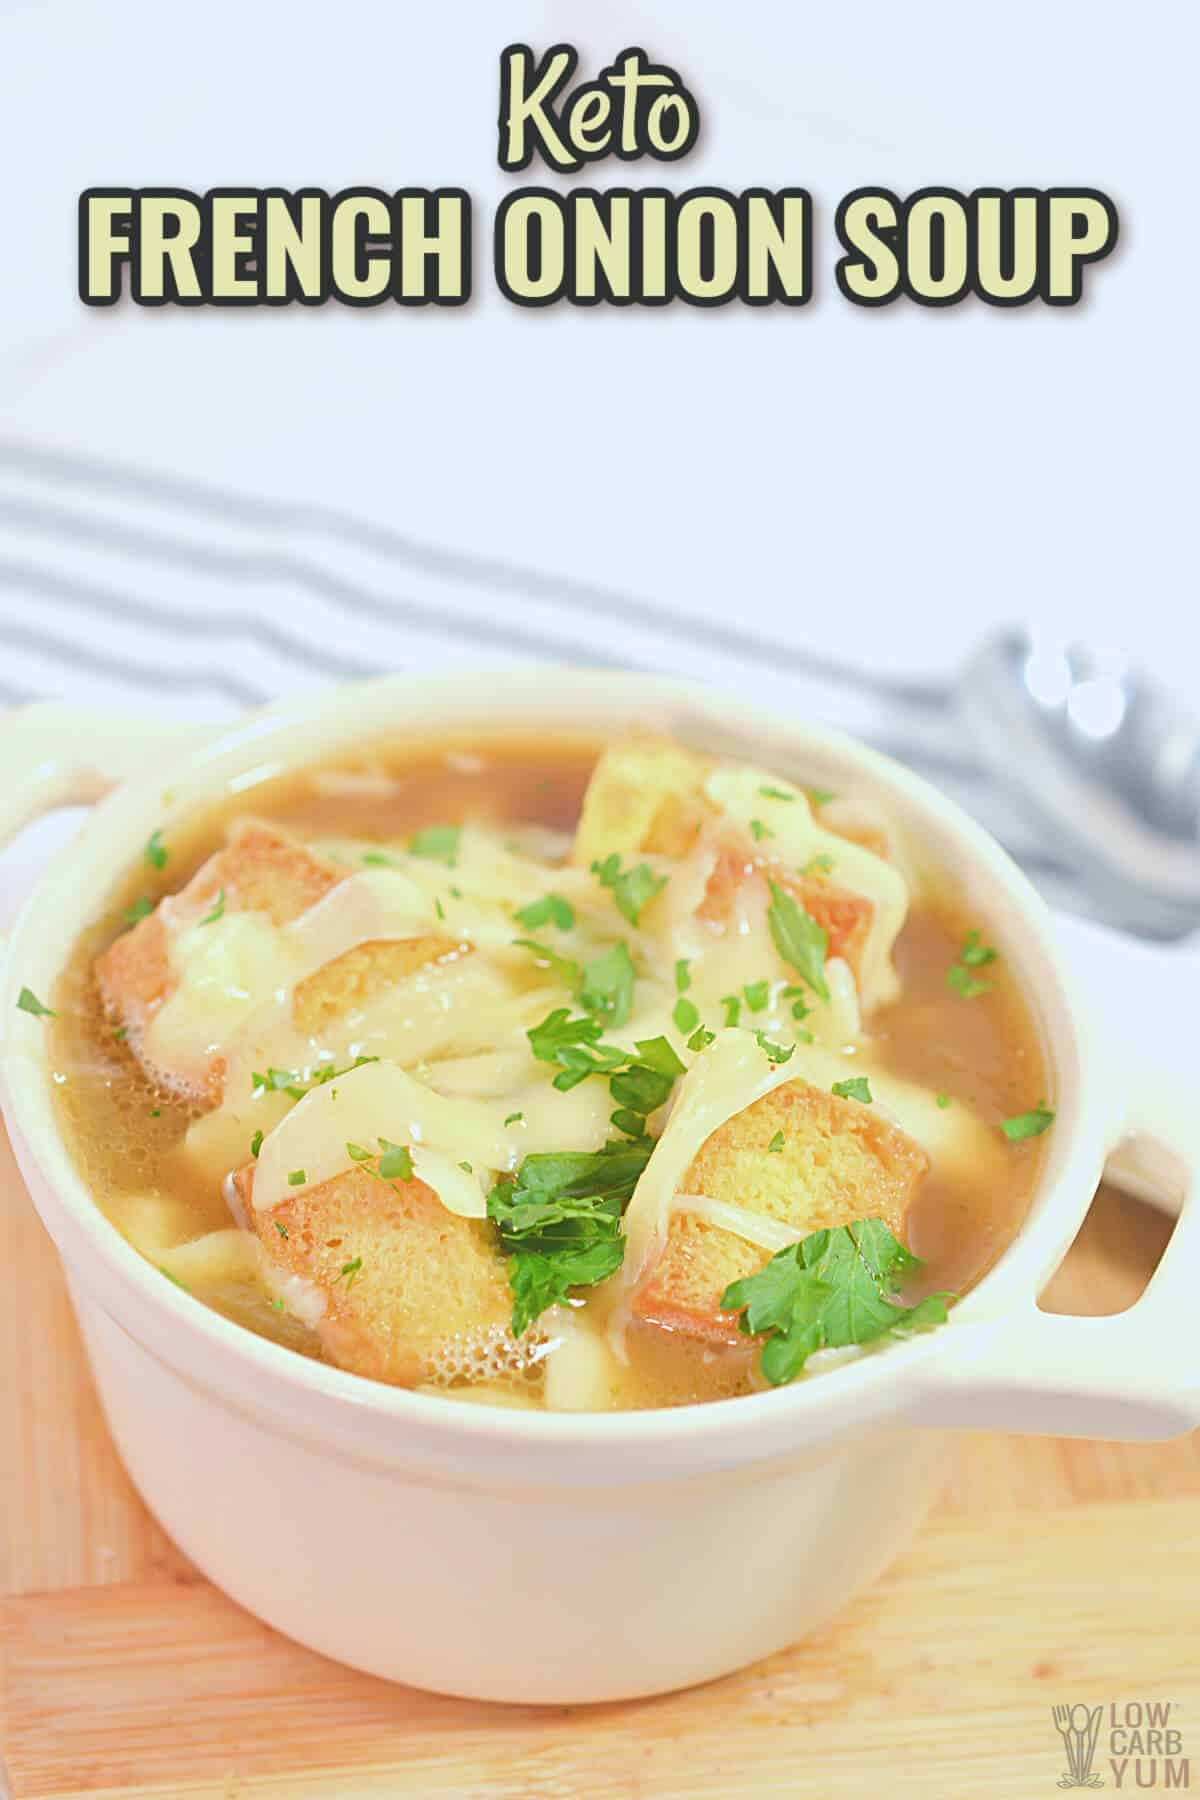 keto french onion soup cover image